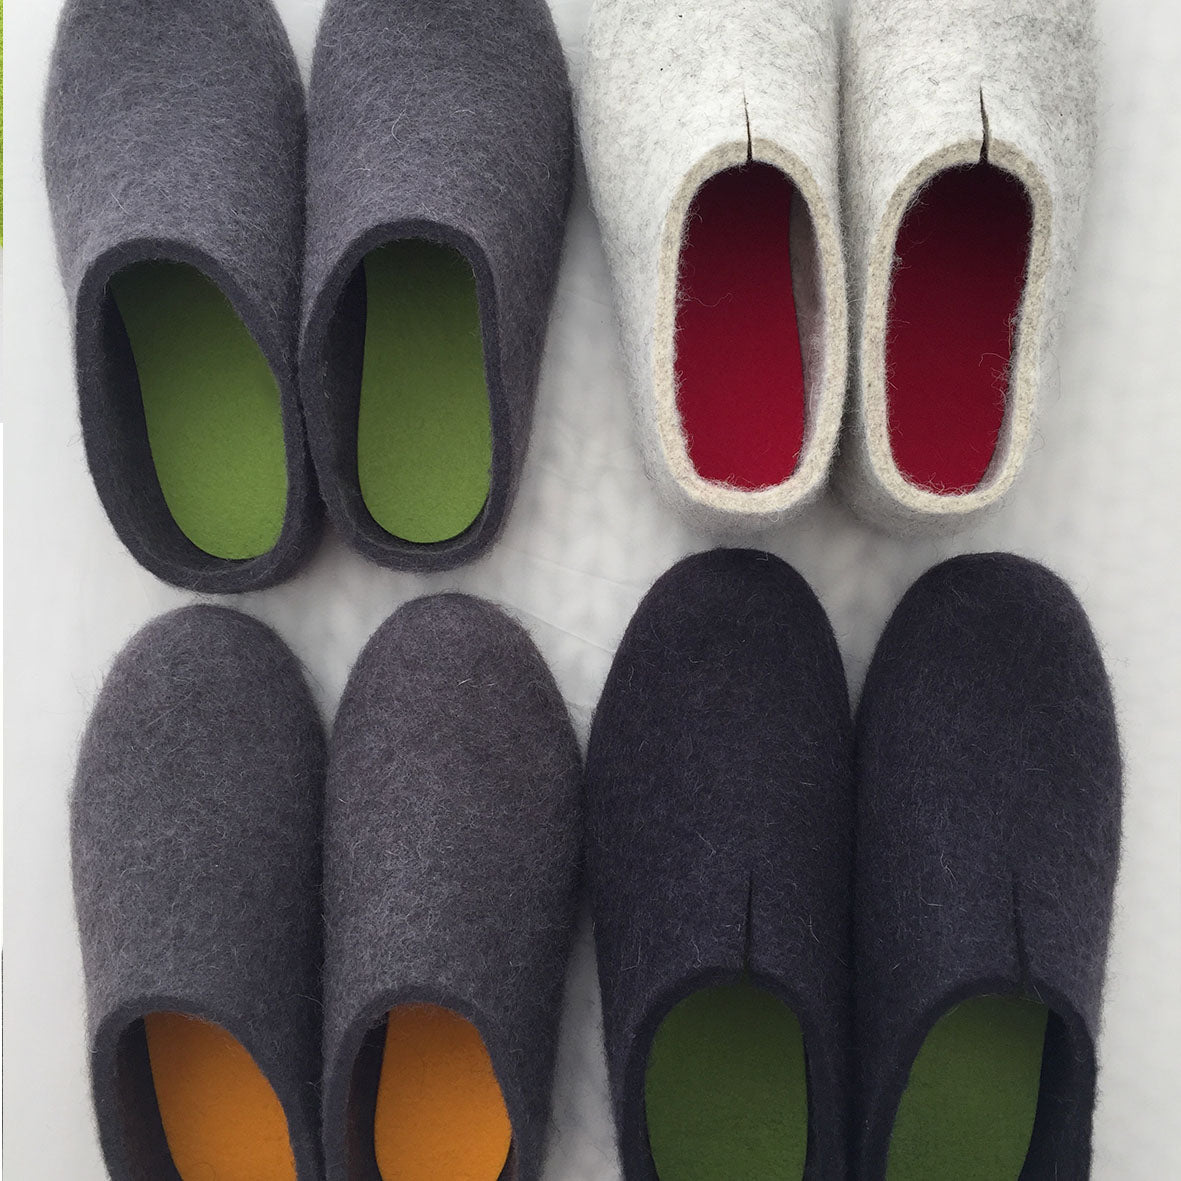 LAHTISET Felted NZ Wool Insoles Size 44